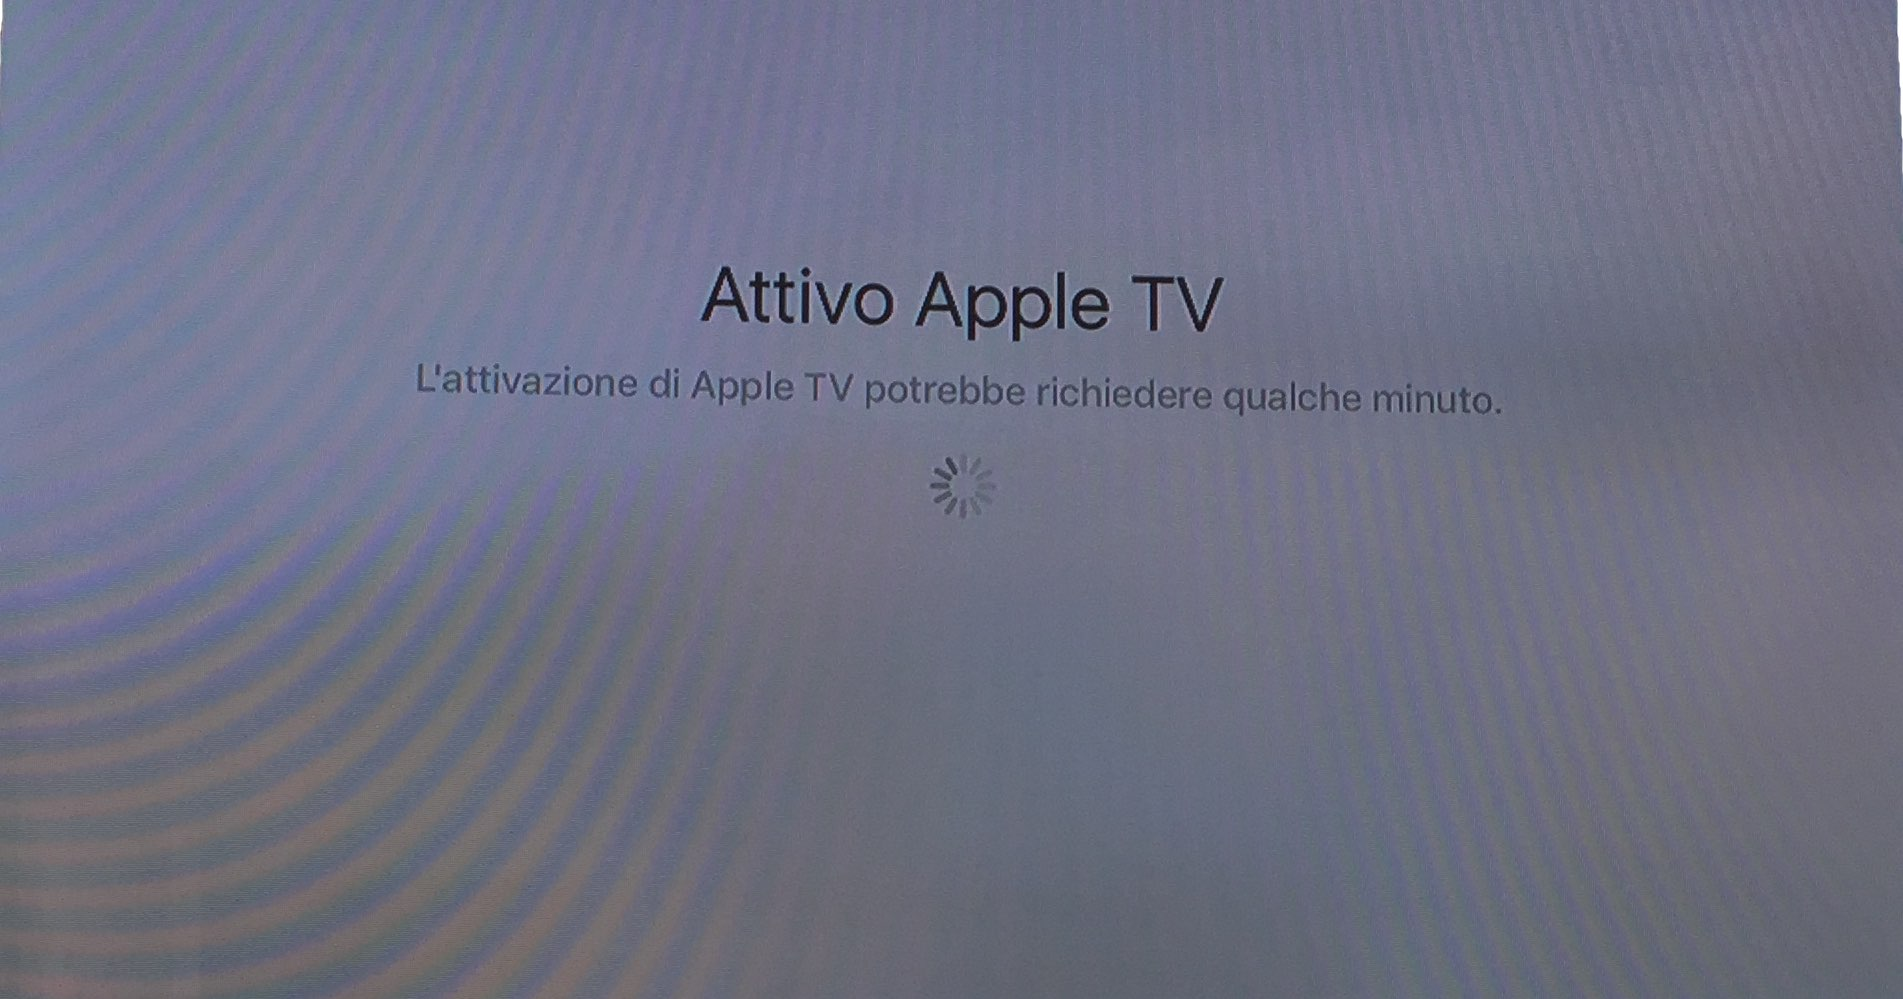 attappletv Unboxing ed Hands On di Apple TV by Italiamac